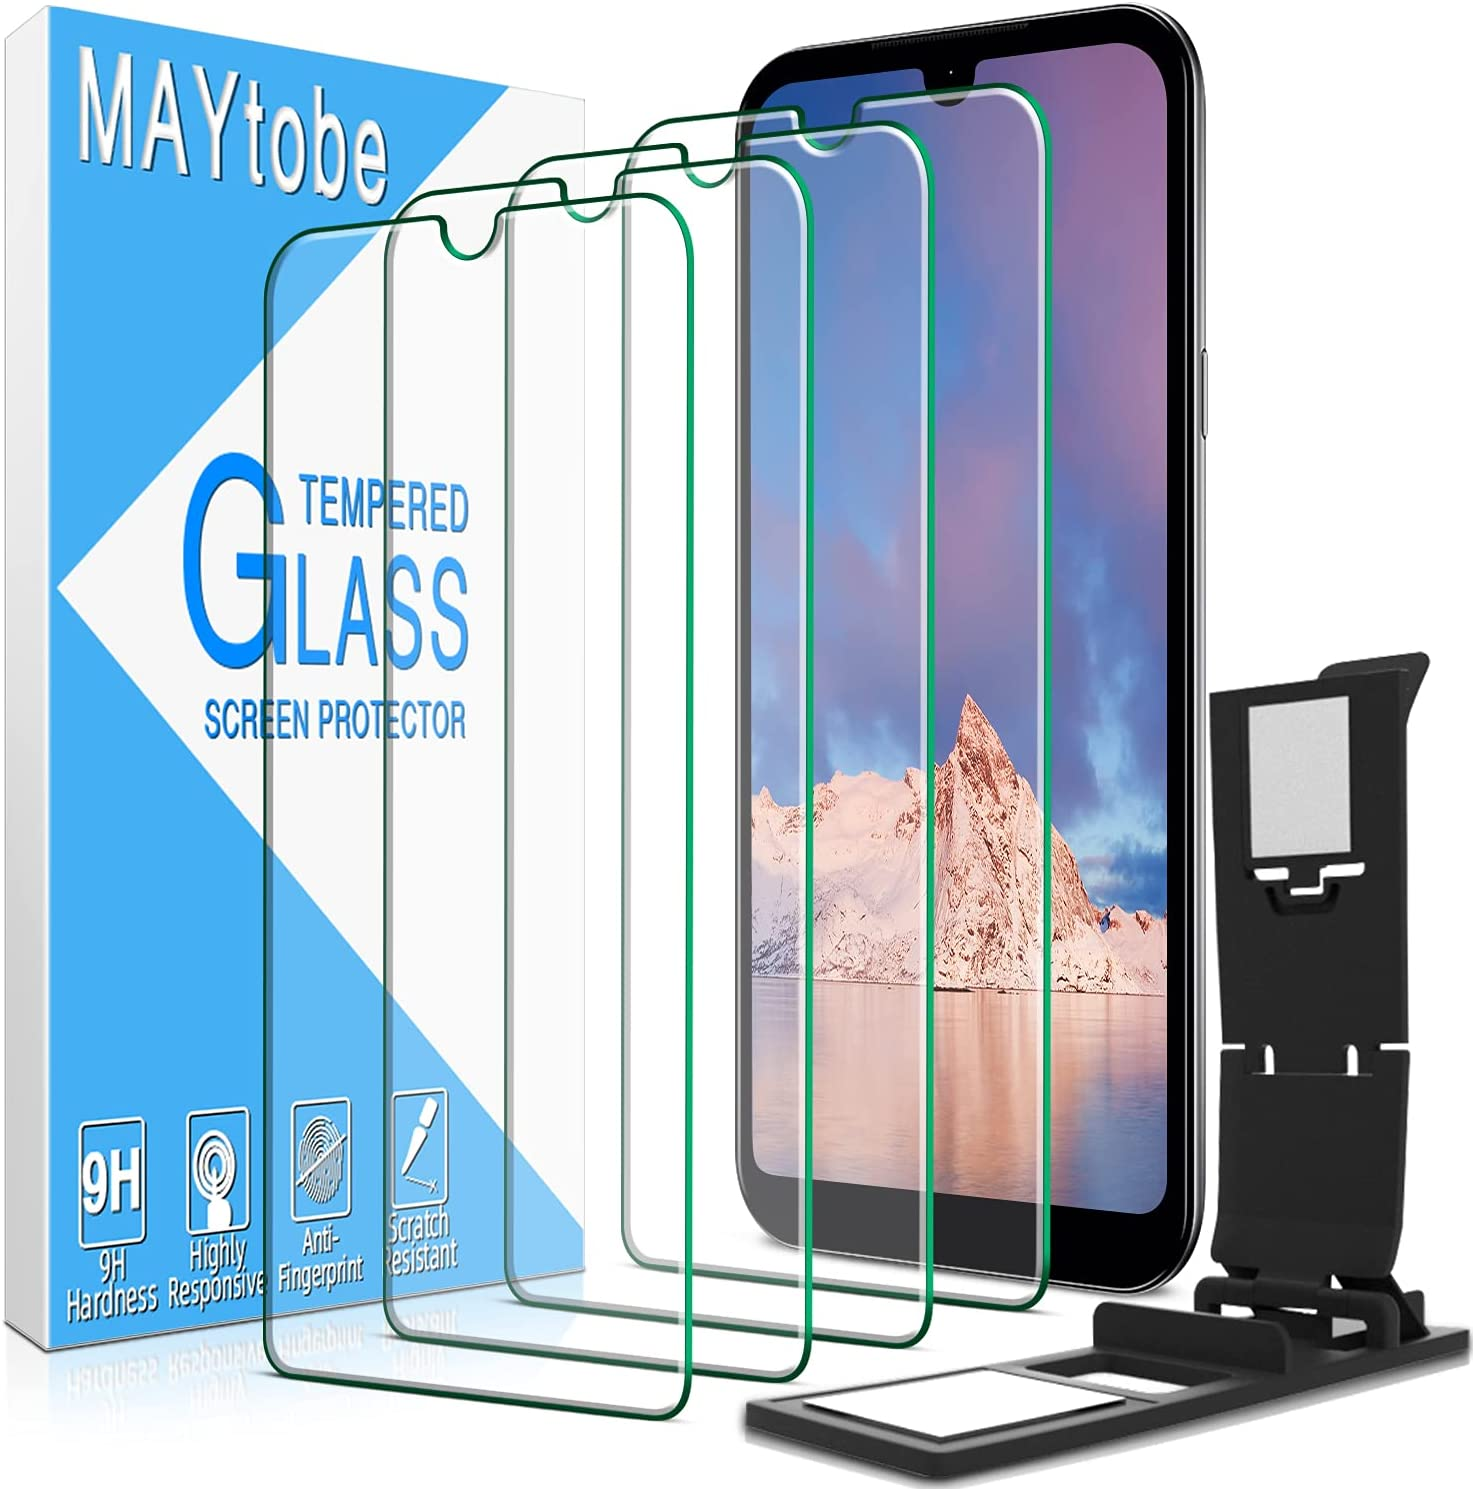 4 Pack MAYtobe Screen Protector for LG K31, Risio 4, Aristo 5, Fortune 3, Phoenix 5 Tempered Glass, 9H Hardness, Bubble Free with Easy Installation Tray